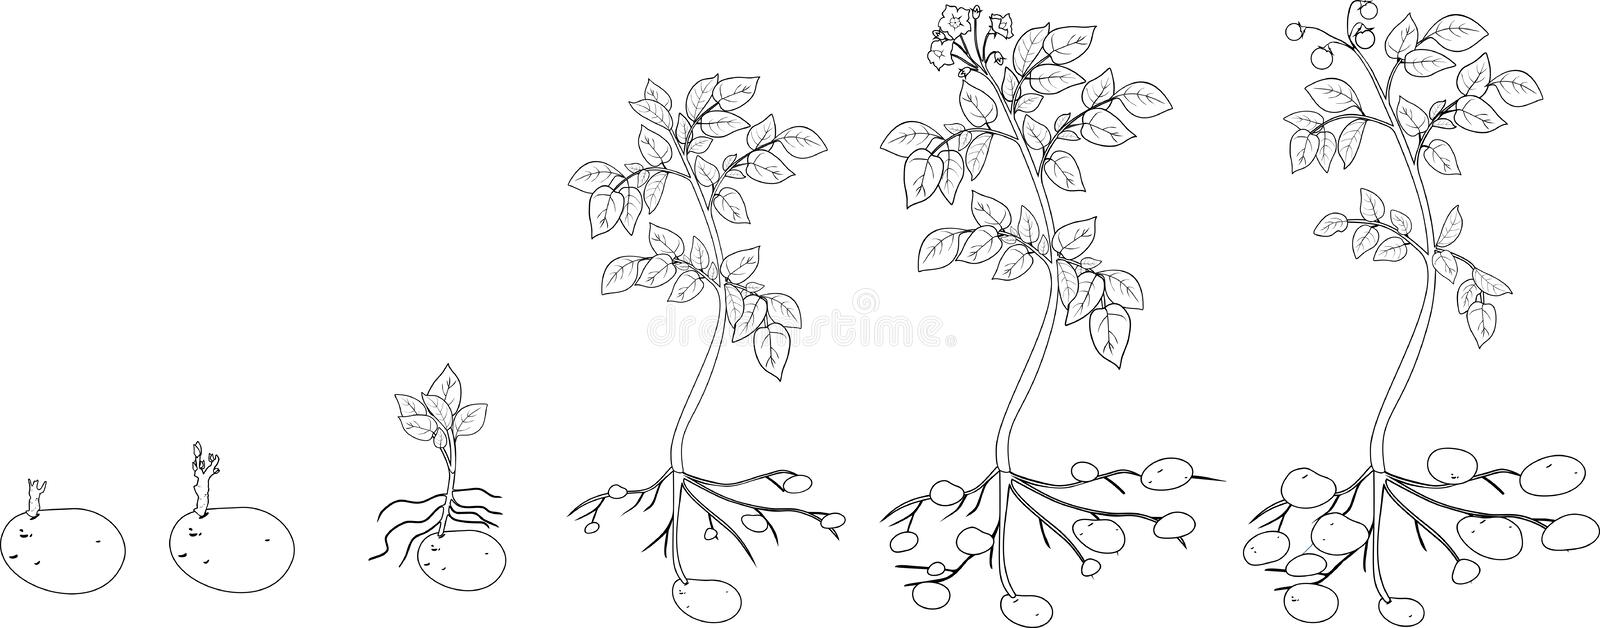 Coloring With Potato Plant Growth Cycle Stock Vector - Illustration ...